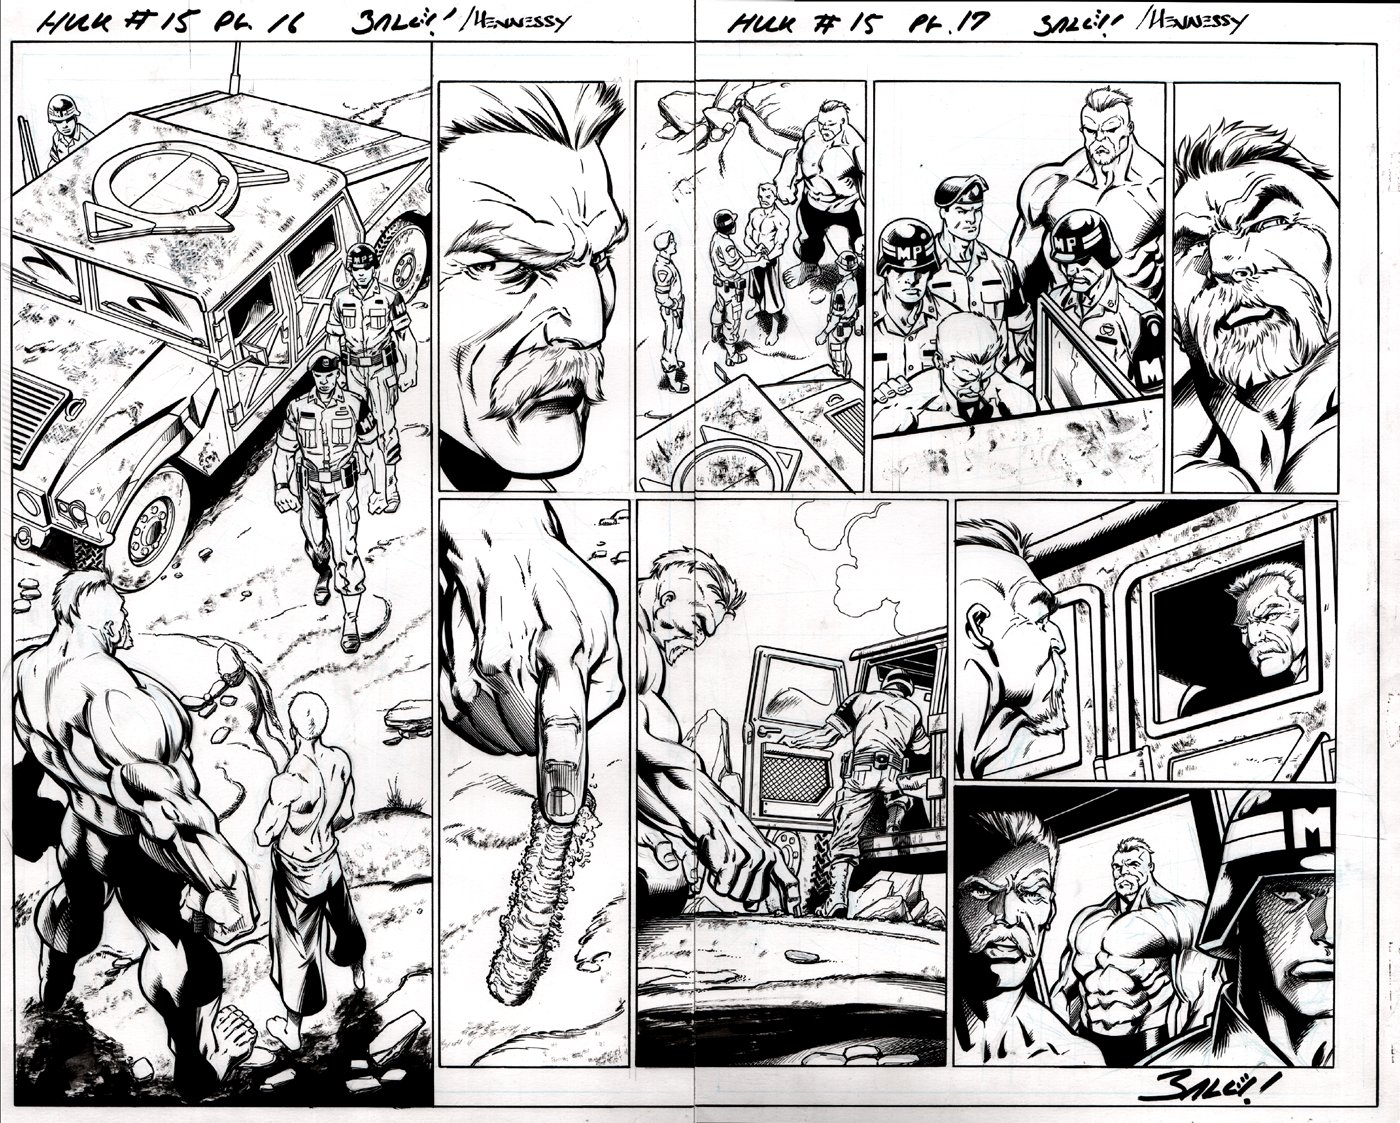 Hulk #15 p 16-17 Double Page Spread (2015)